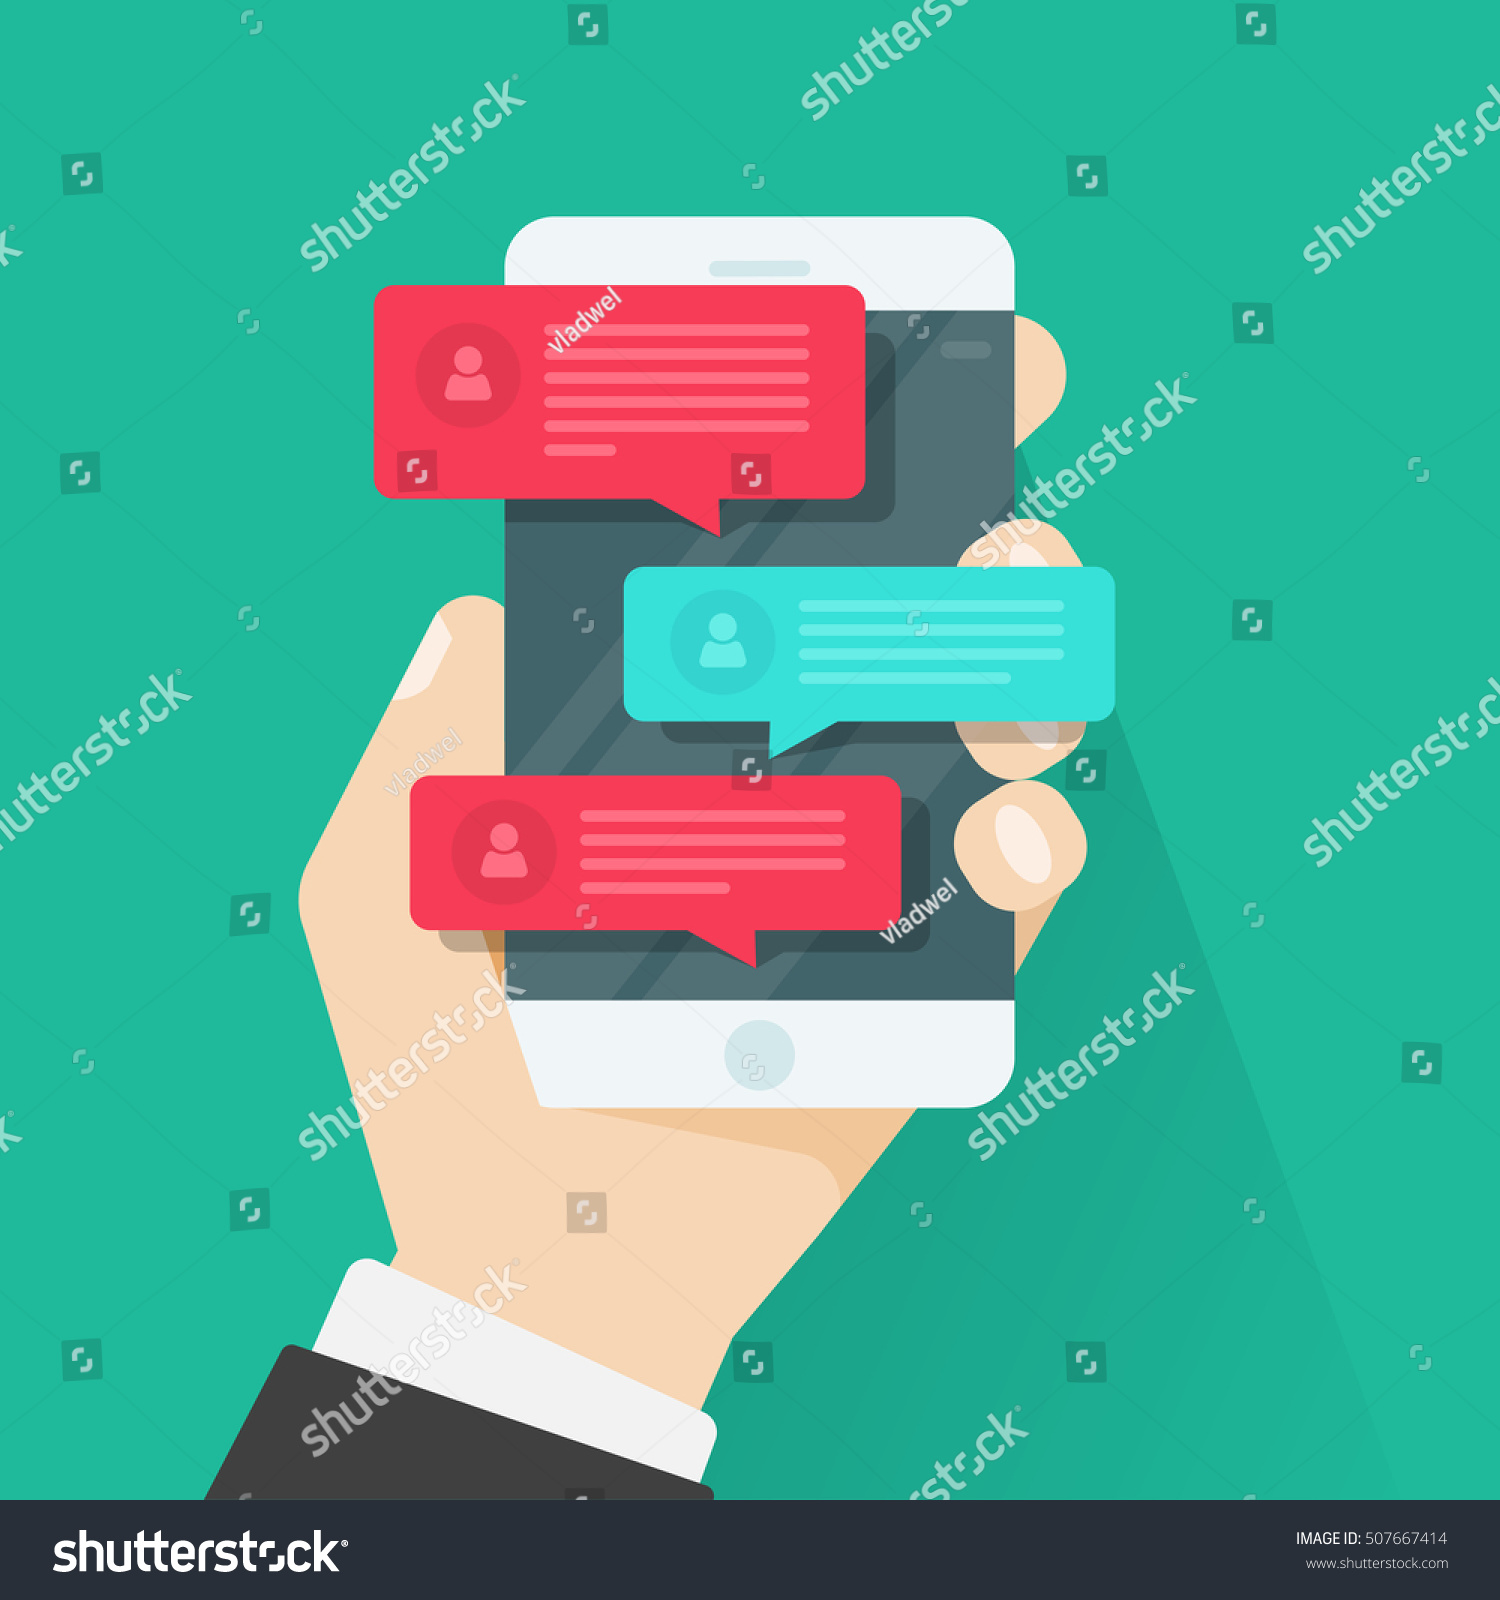 Gratis Juridisch Advies Chat Mobile Phone Chat Message Notifications Vector Stockvector